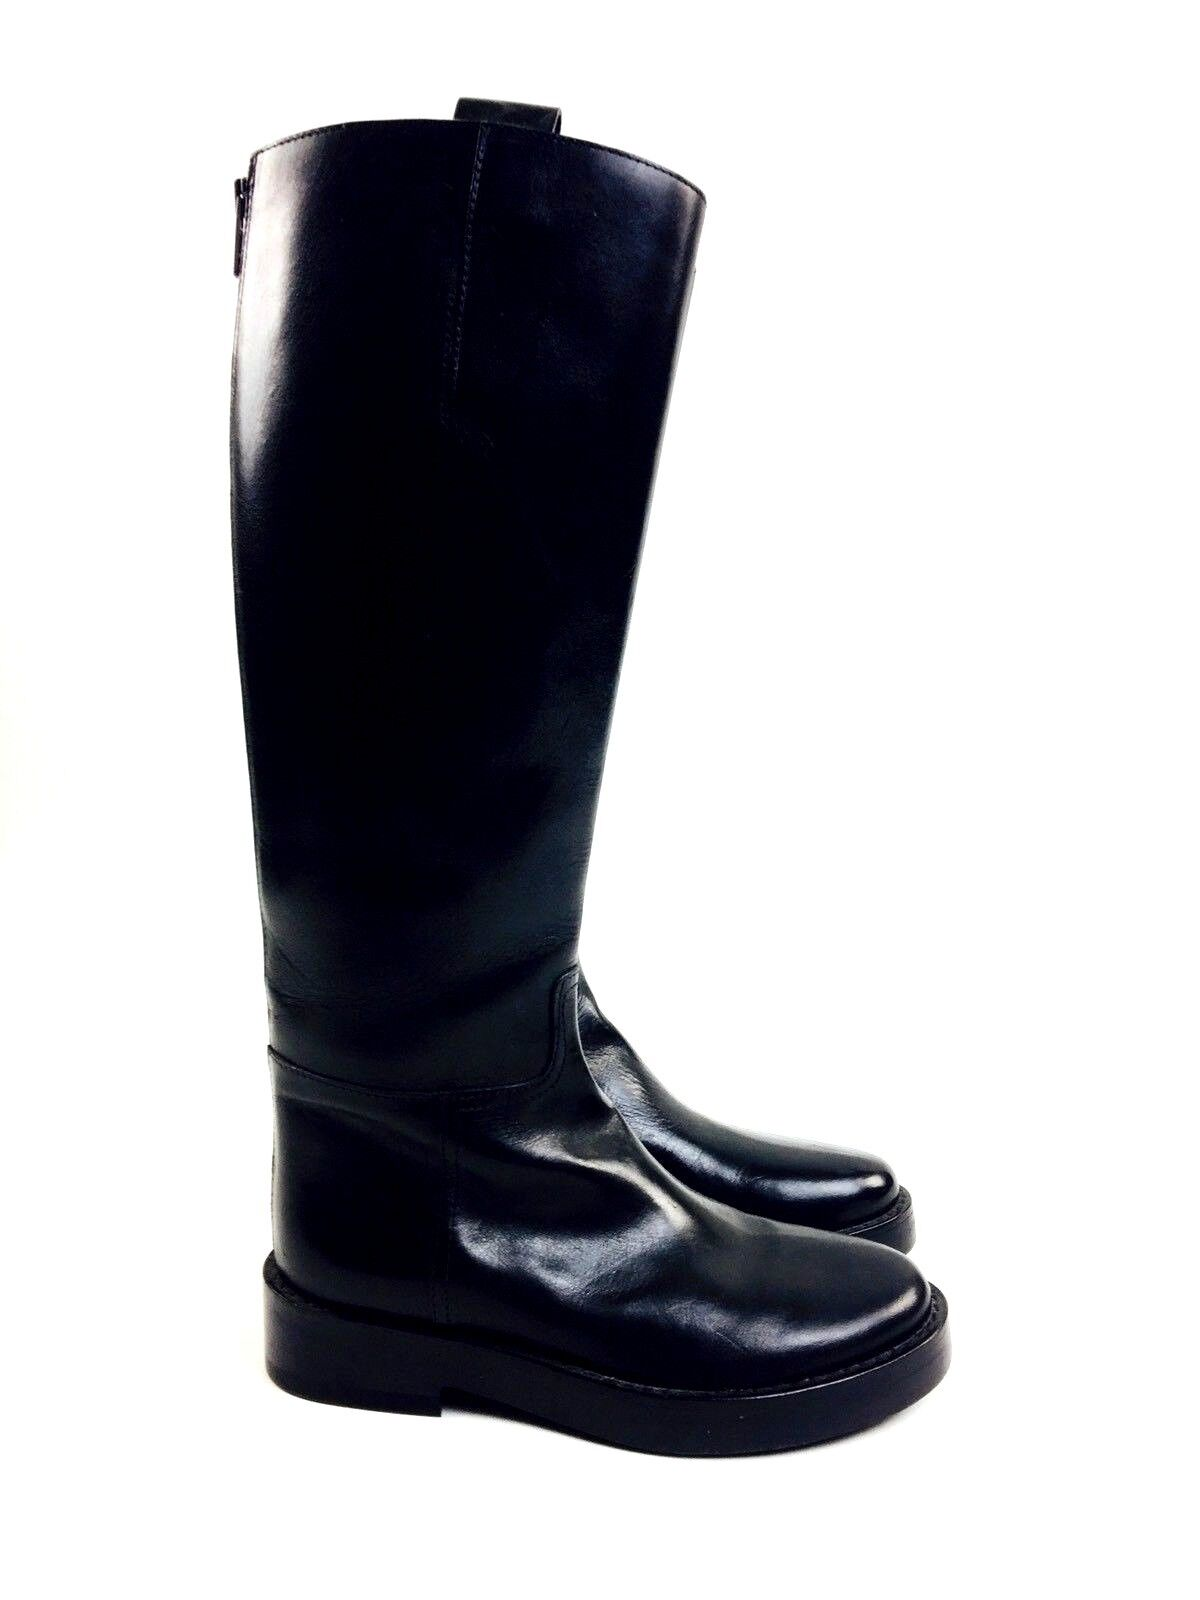 Ann Demeulemeester Boots Black Leather Tall Riding Equestrian Boots 6.5 2195